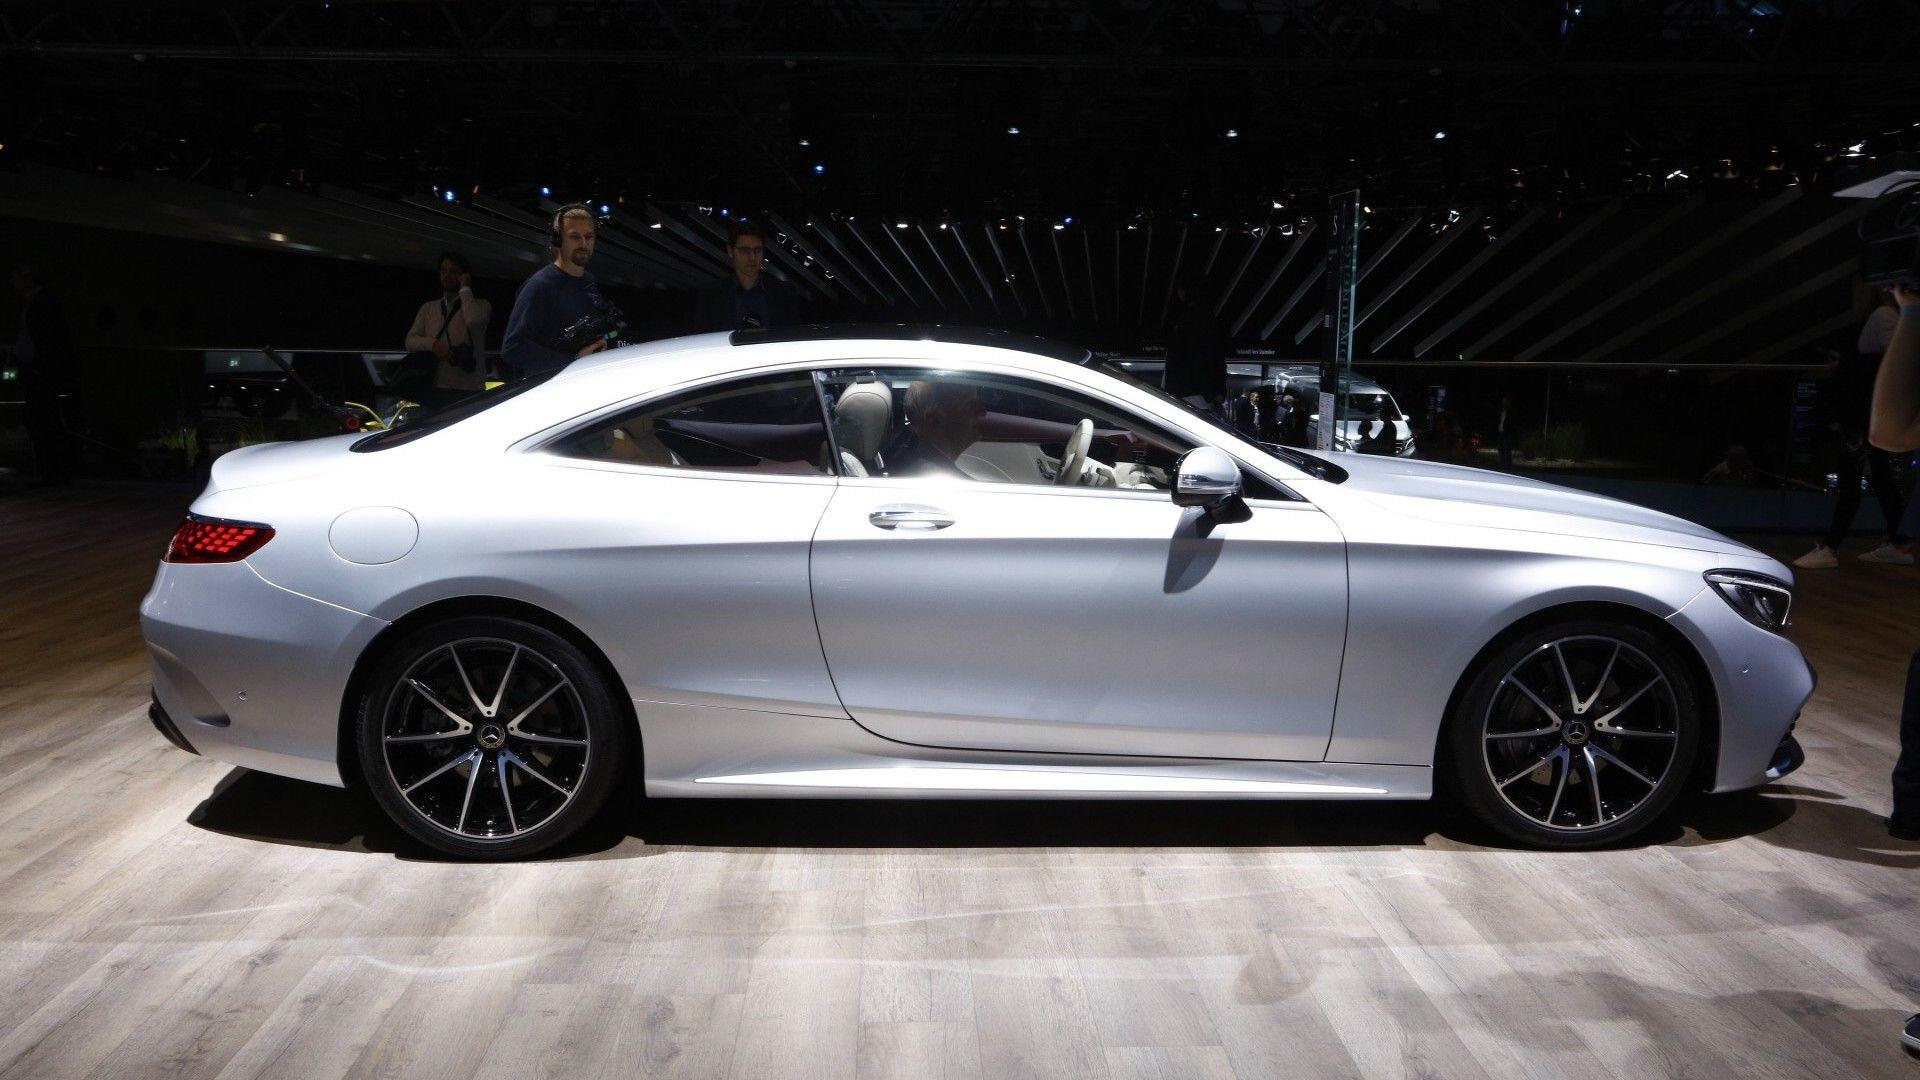 https://icdn-8.motor1.com/images/mgl/30nbX/s1/2018-mercedes-s-class-coupe-cabriolet-live-in-frankfurt.jpg